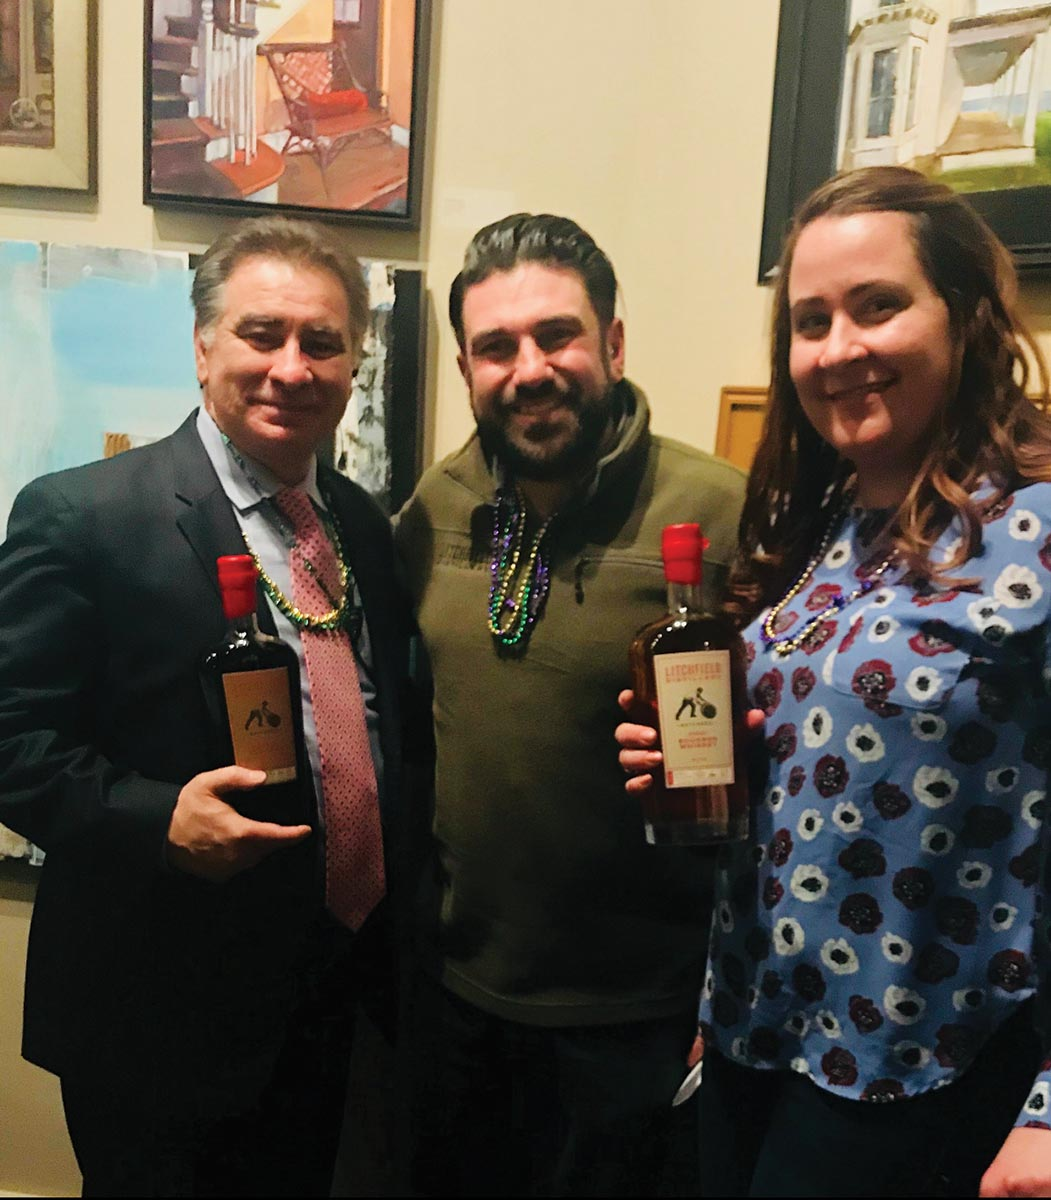 Litchfield Distillery Featured at Providence Fat Tuesday Celebration